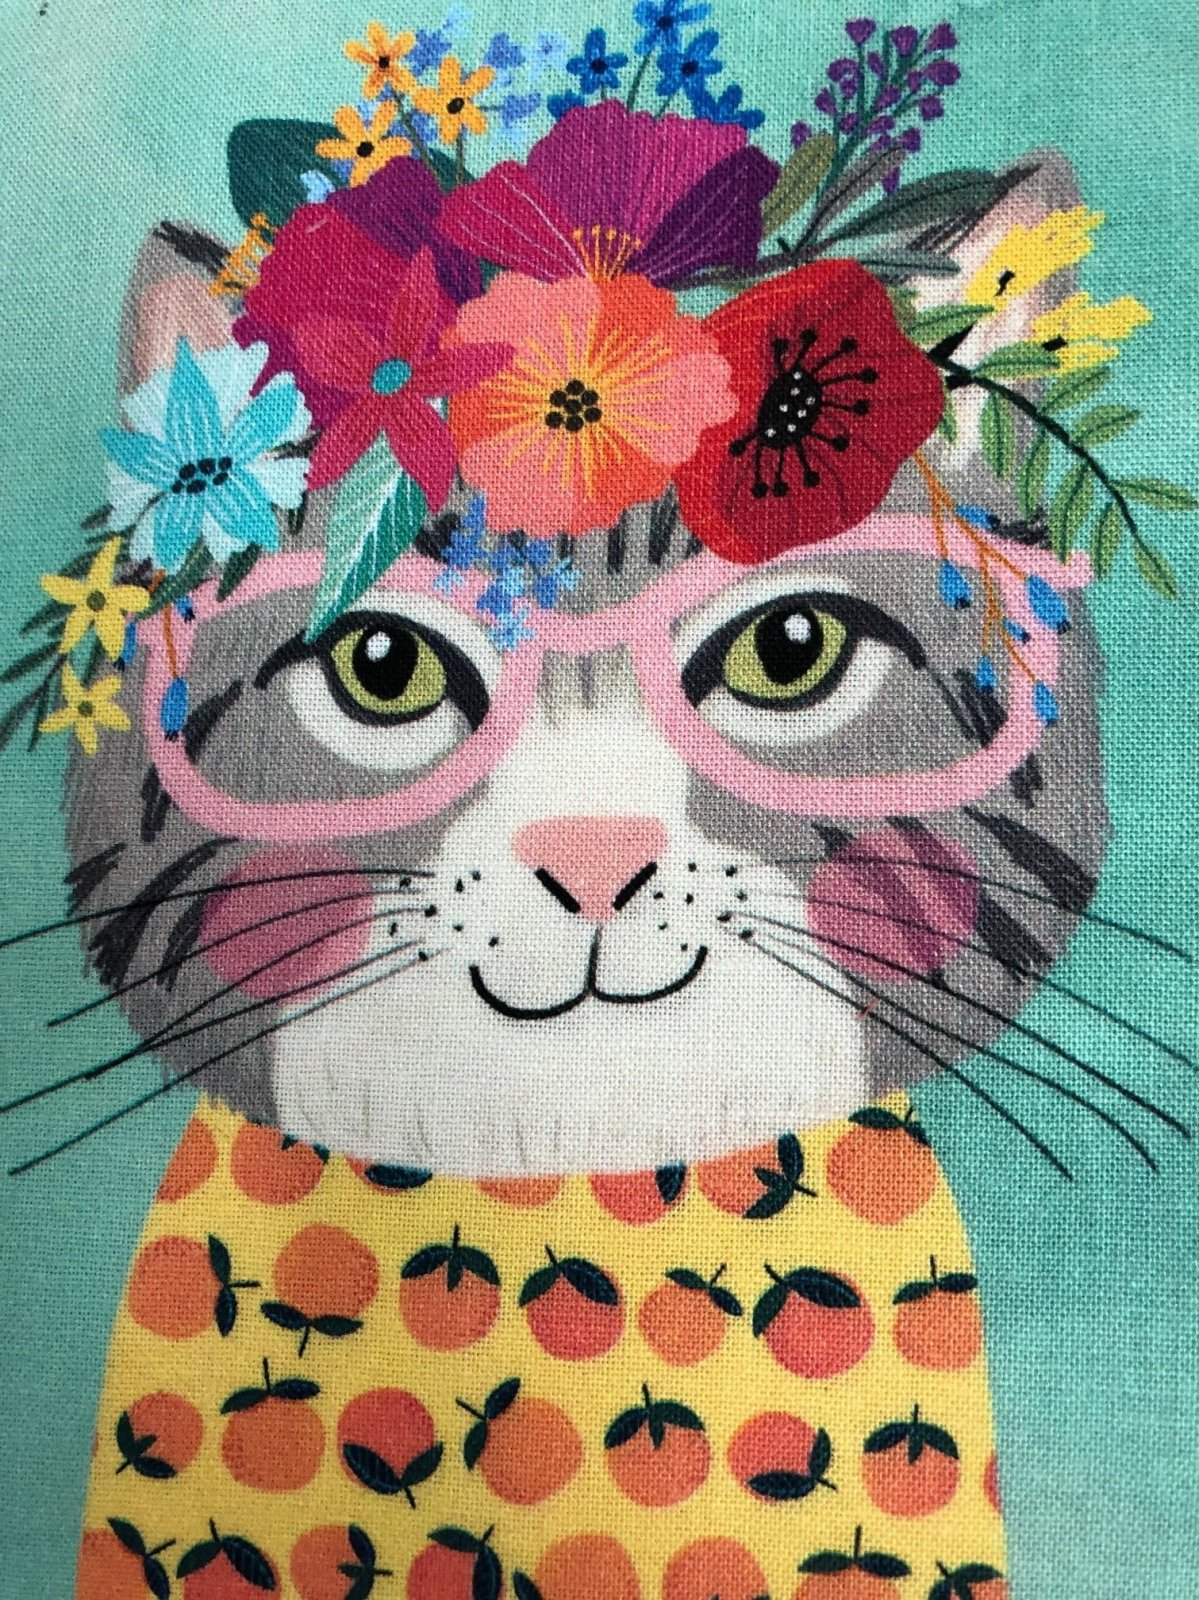 Postcard Kit Sm - Cats 6x4.25in